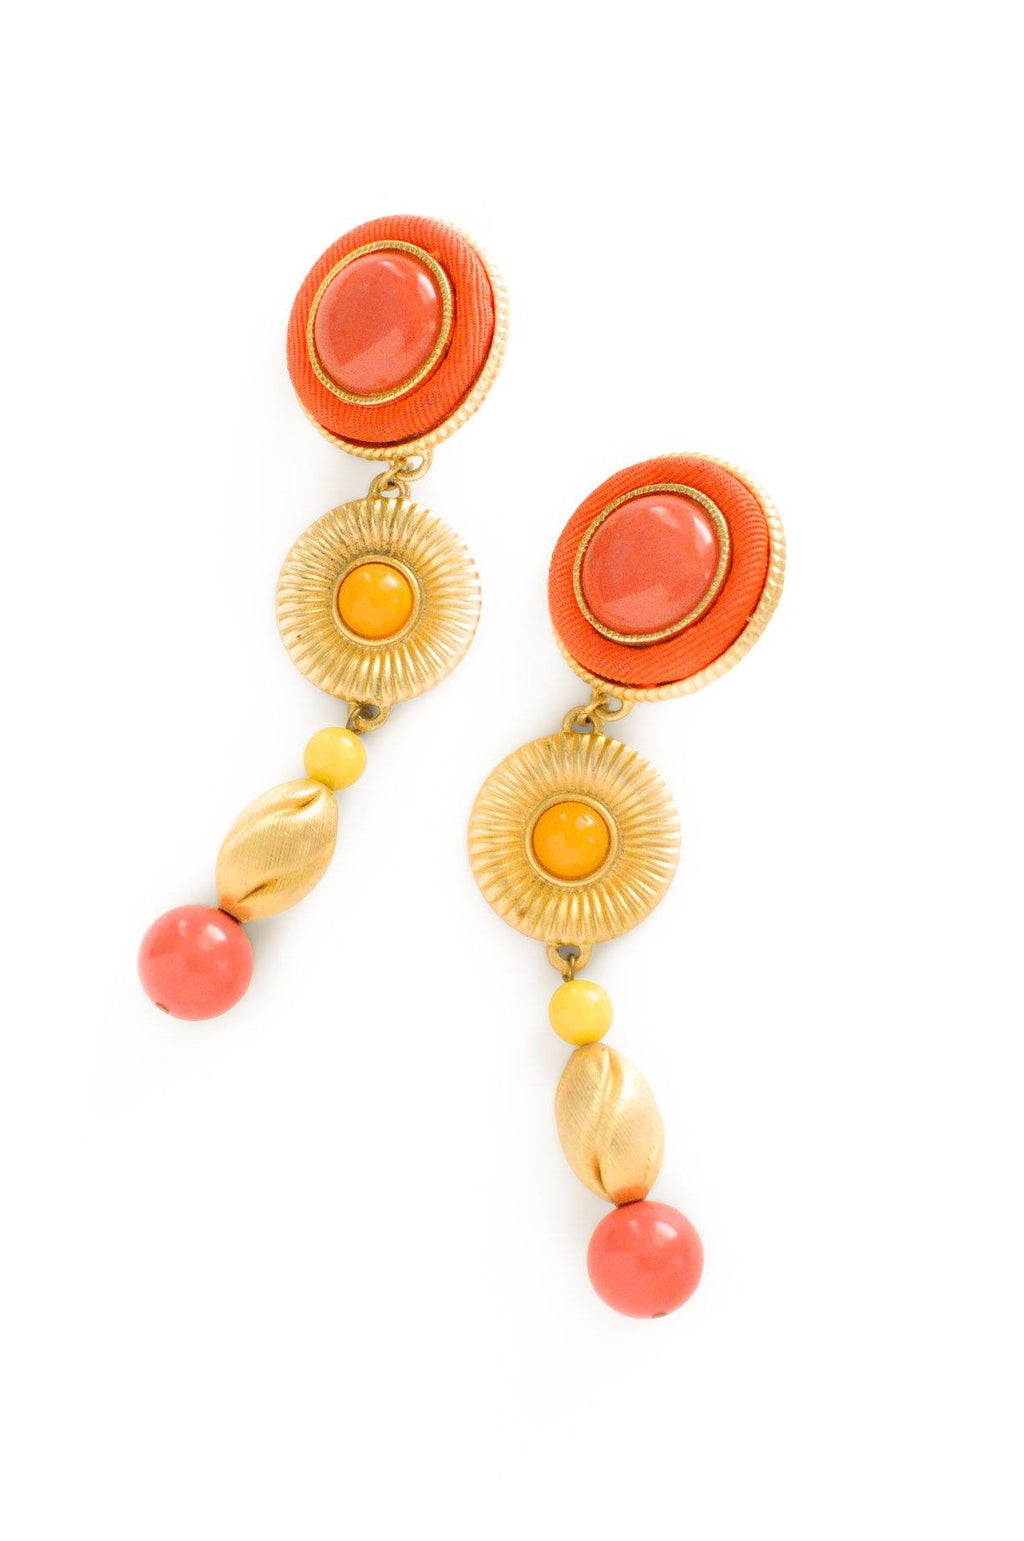 Citrus Statement Clip-on Earrings